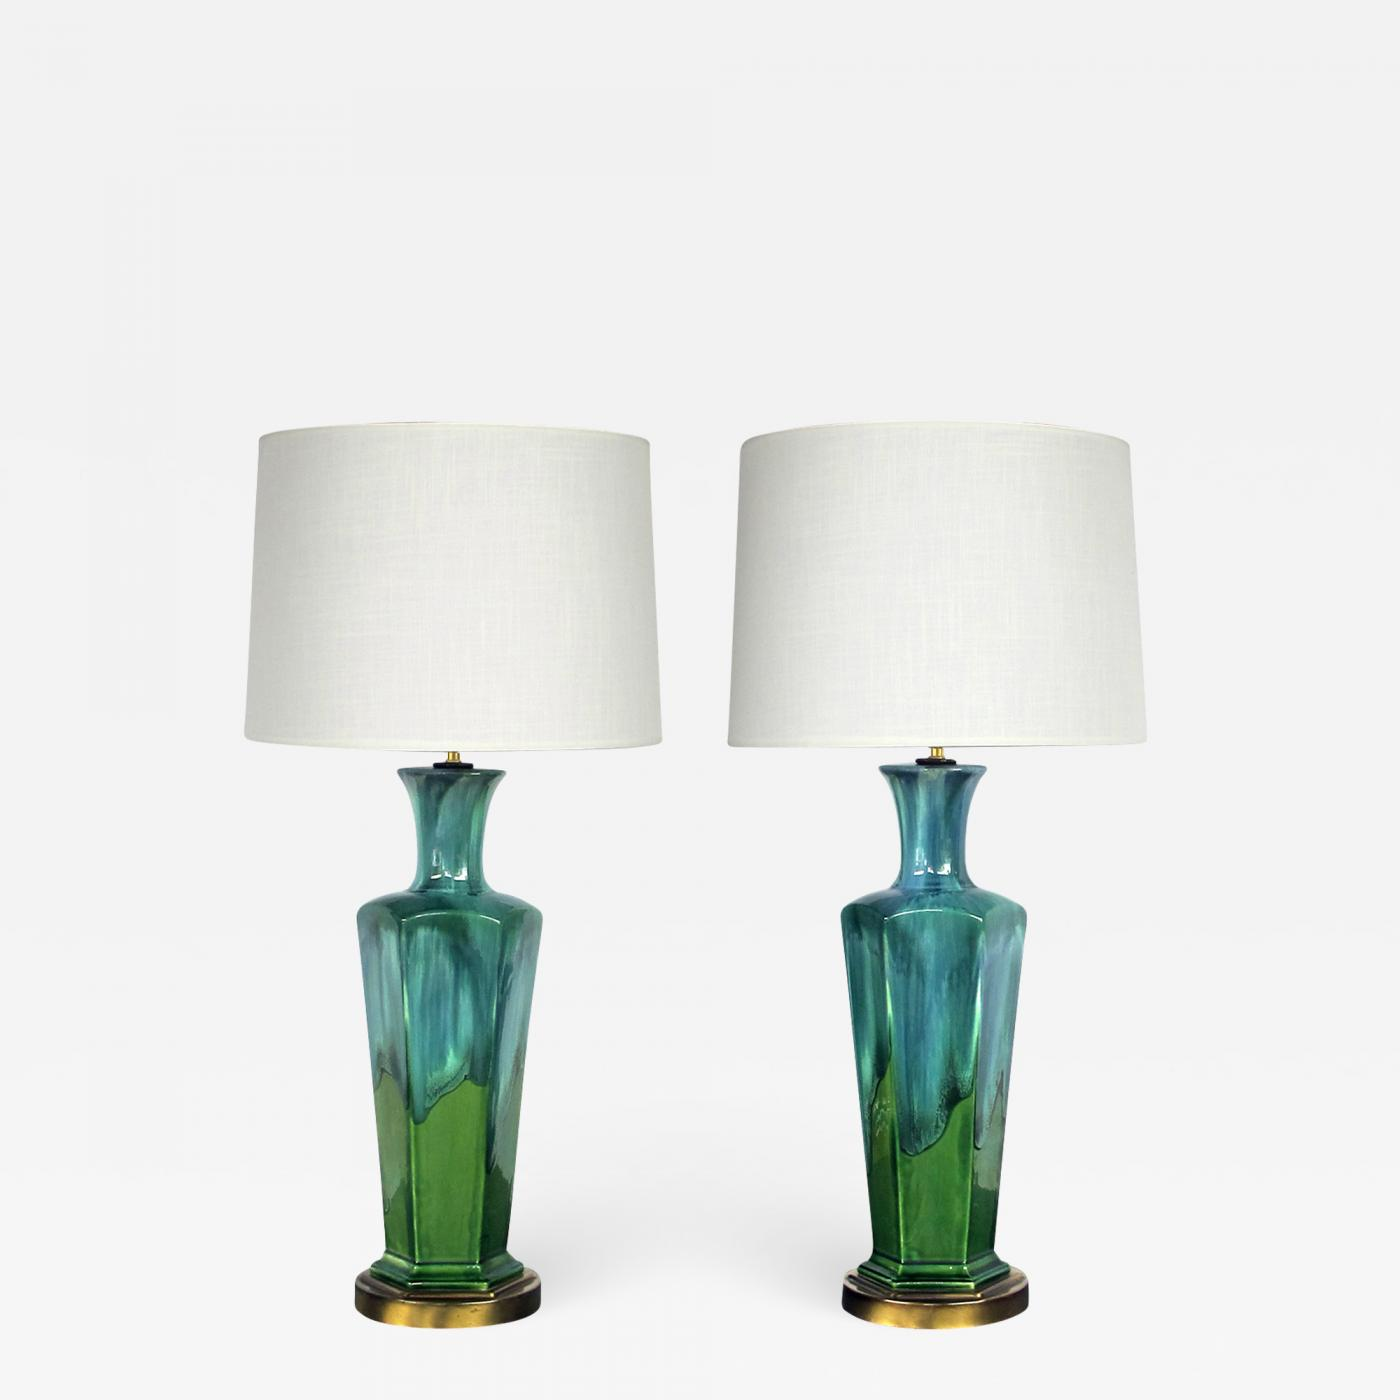 Image of: Stylish Pair Of Mid Century Modern Blue And Green Drip Glaze Hexagonal Lamps